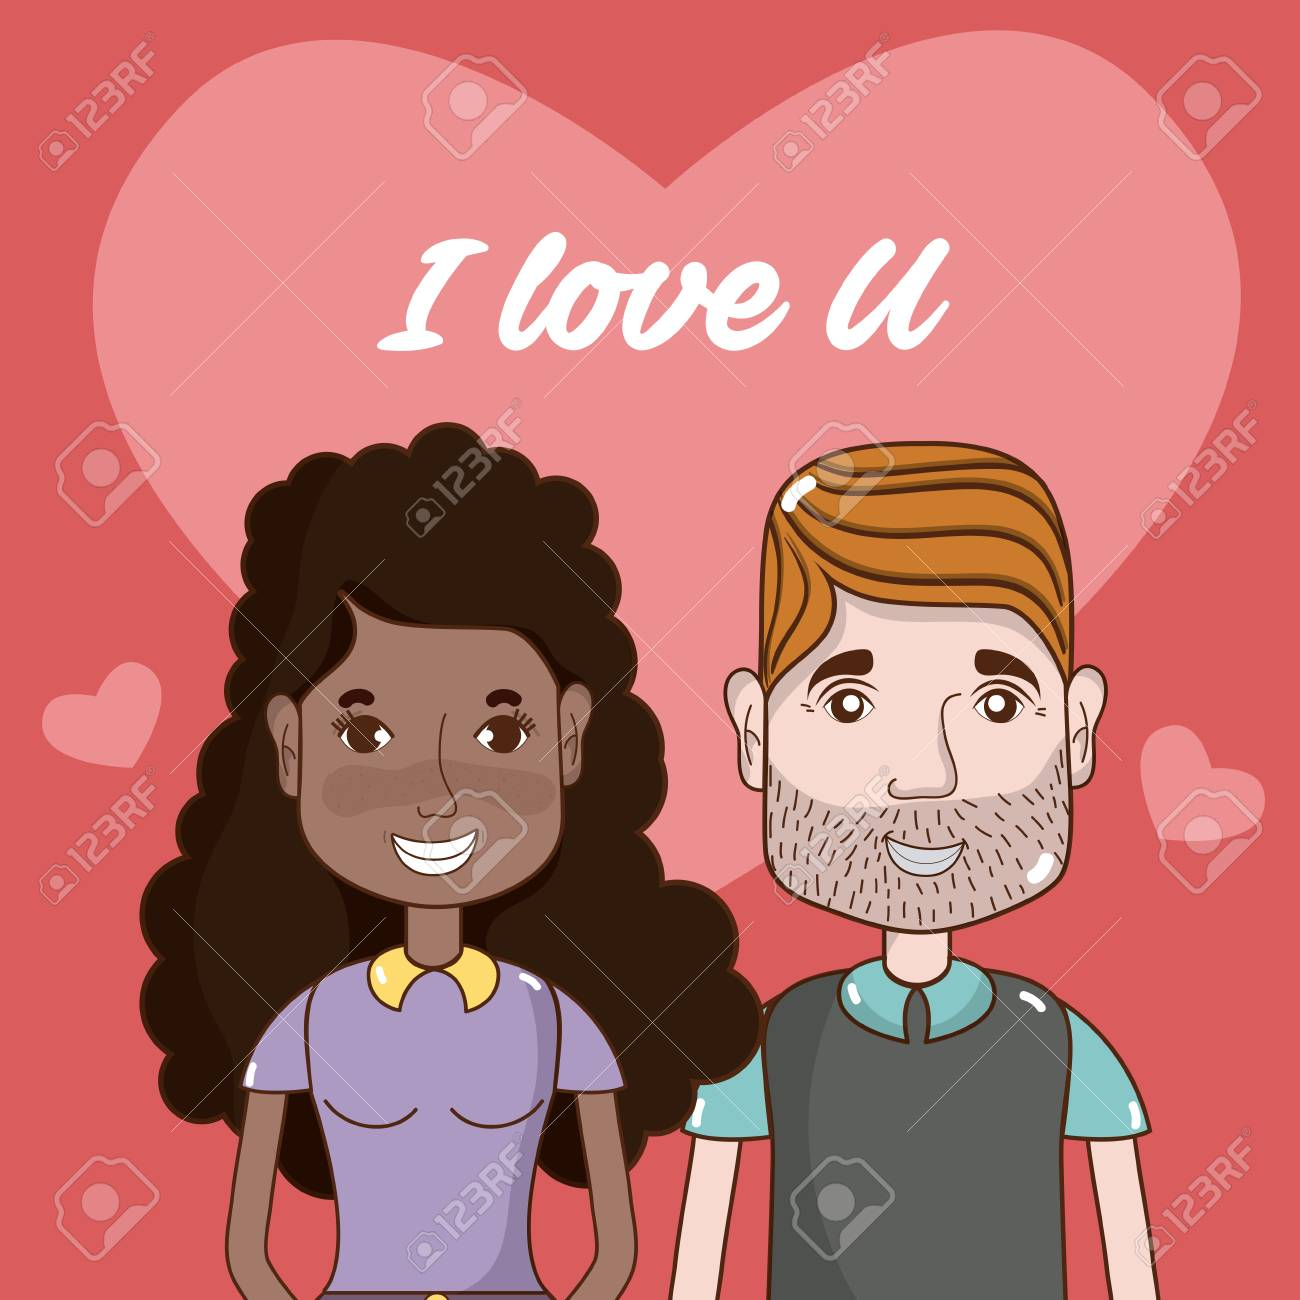 I Love You Card With Cute And Funny Couple Cartoons Vector